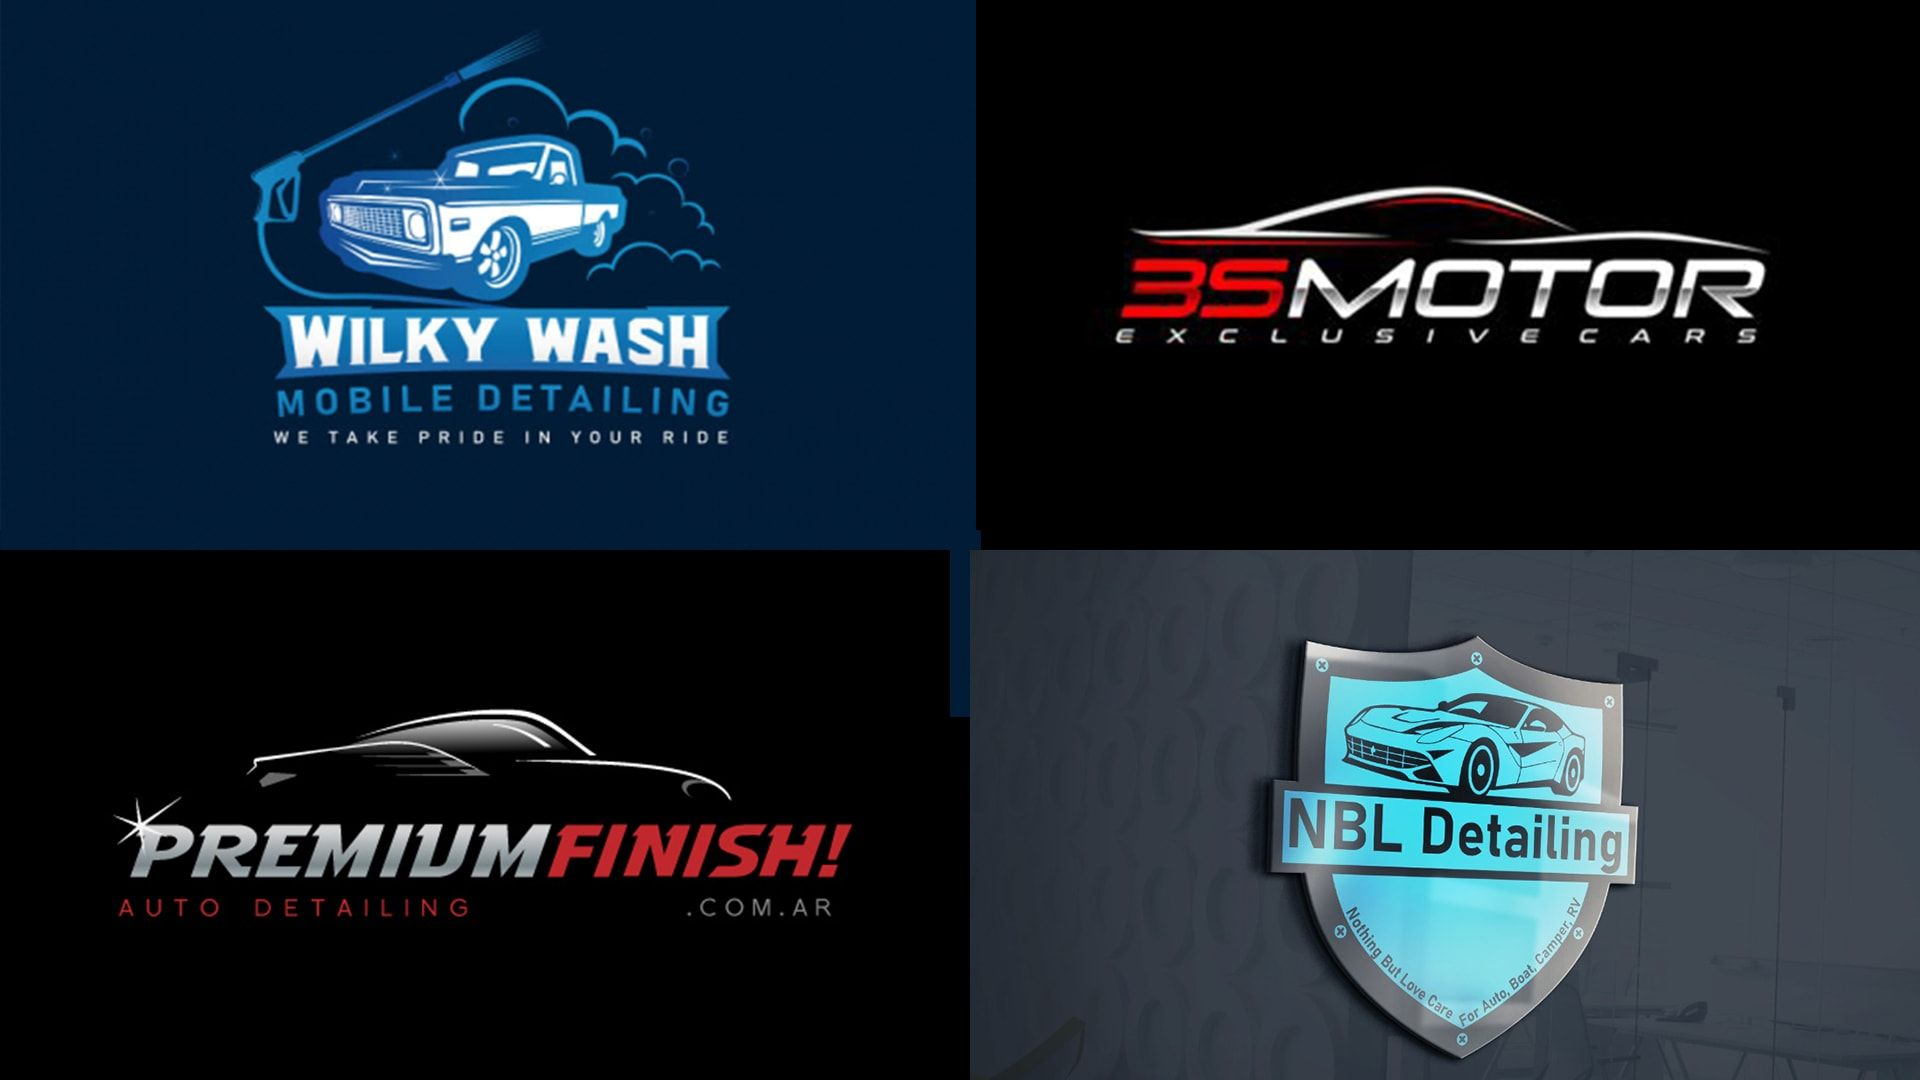 Moobadesigns I Will Do Unique Auto Detailing Automotive And Car Wash Logo For 5 On Fiverr Com Car Detailing Wash Logo Car Wash [ 1080 x 1920 Pixel ]